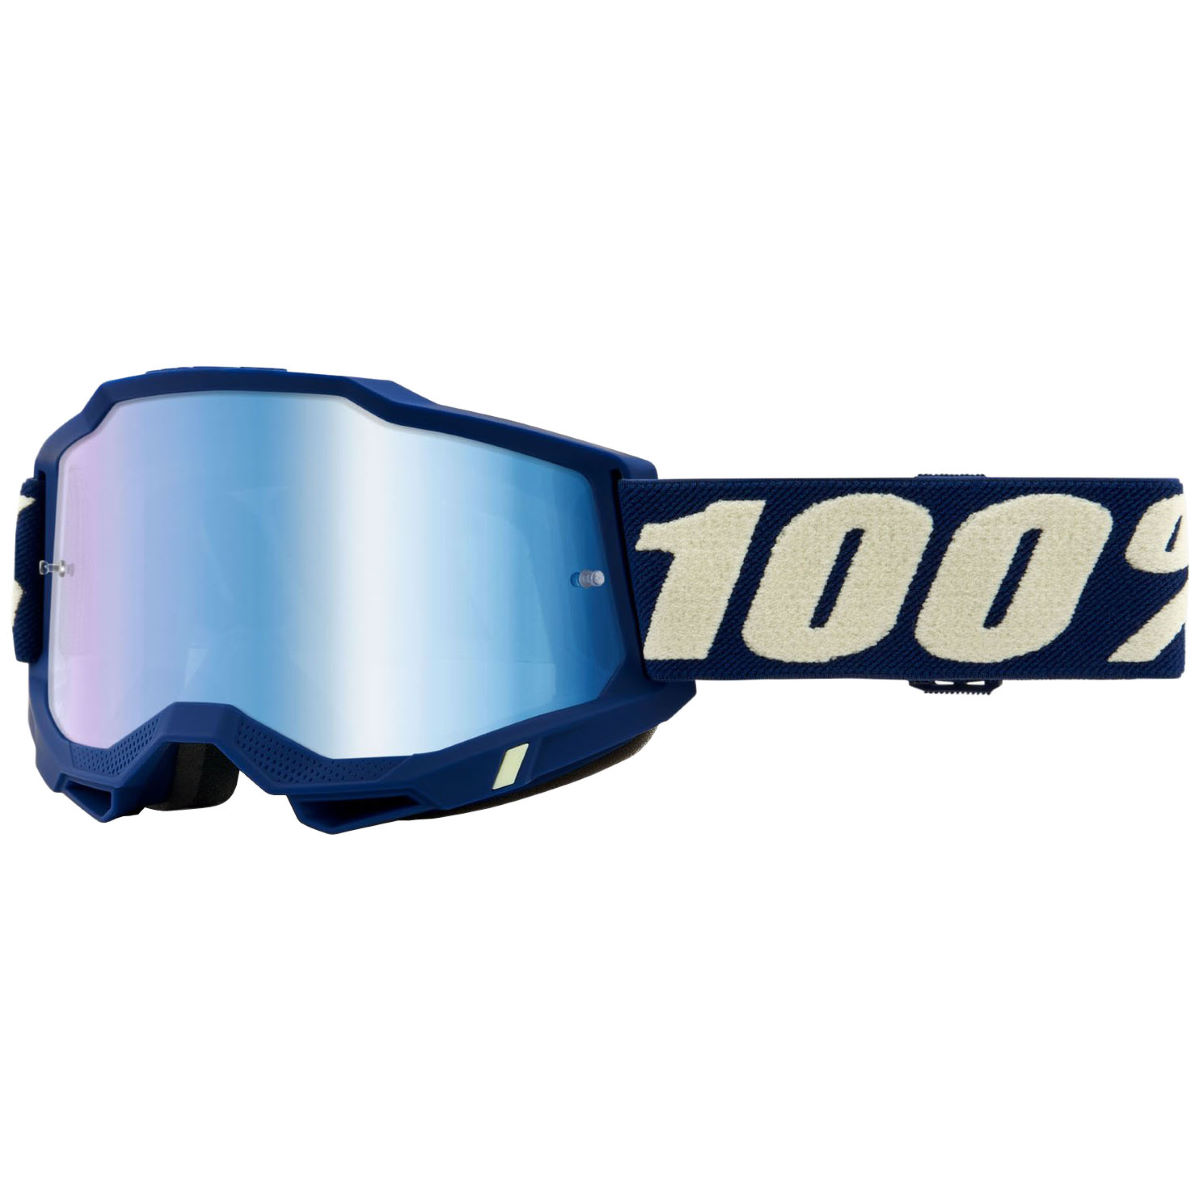 100% Accuri Goggles - Mirror Lens   Cycling Goggles